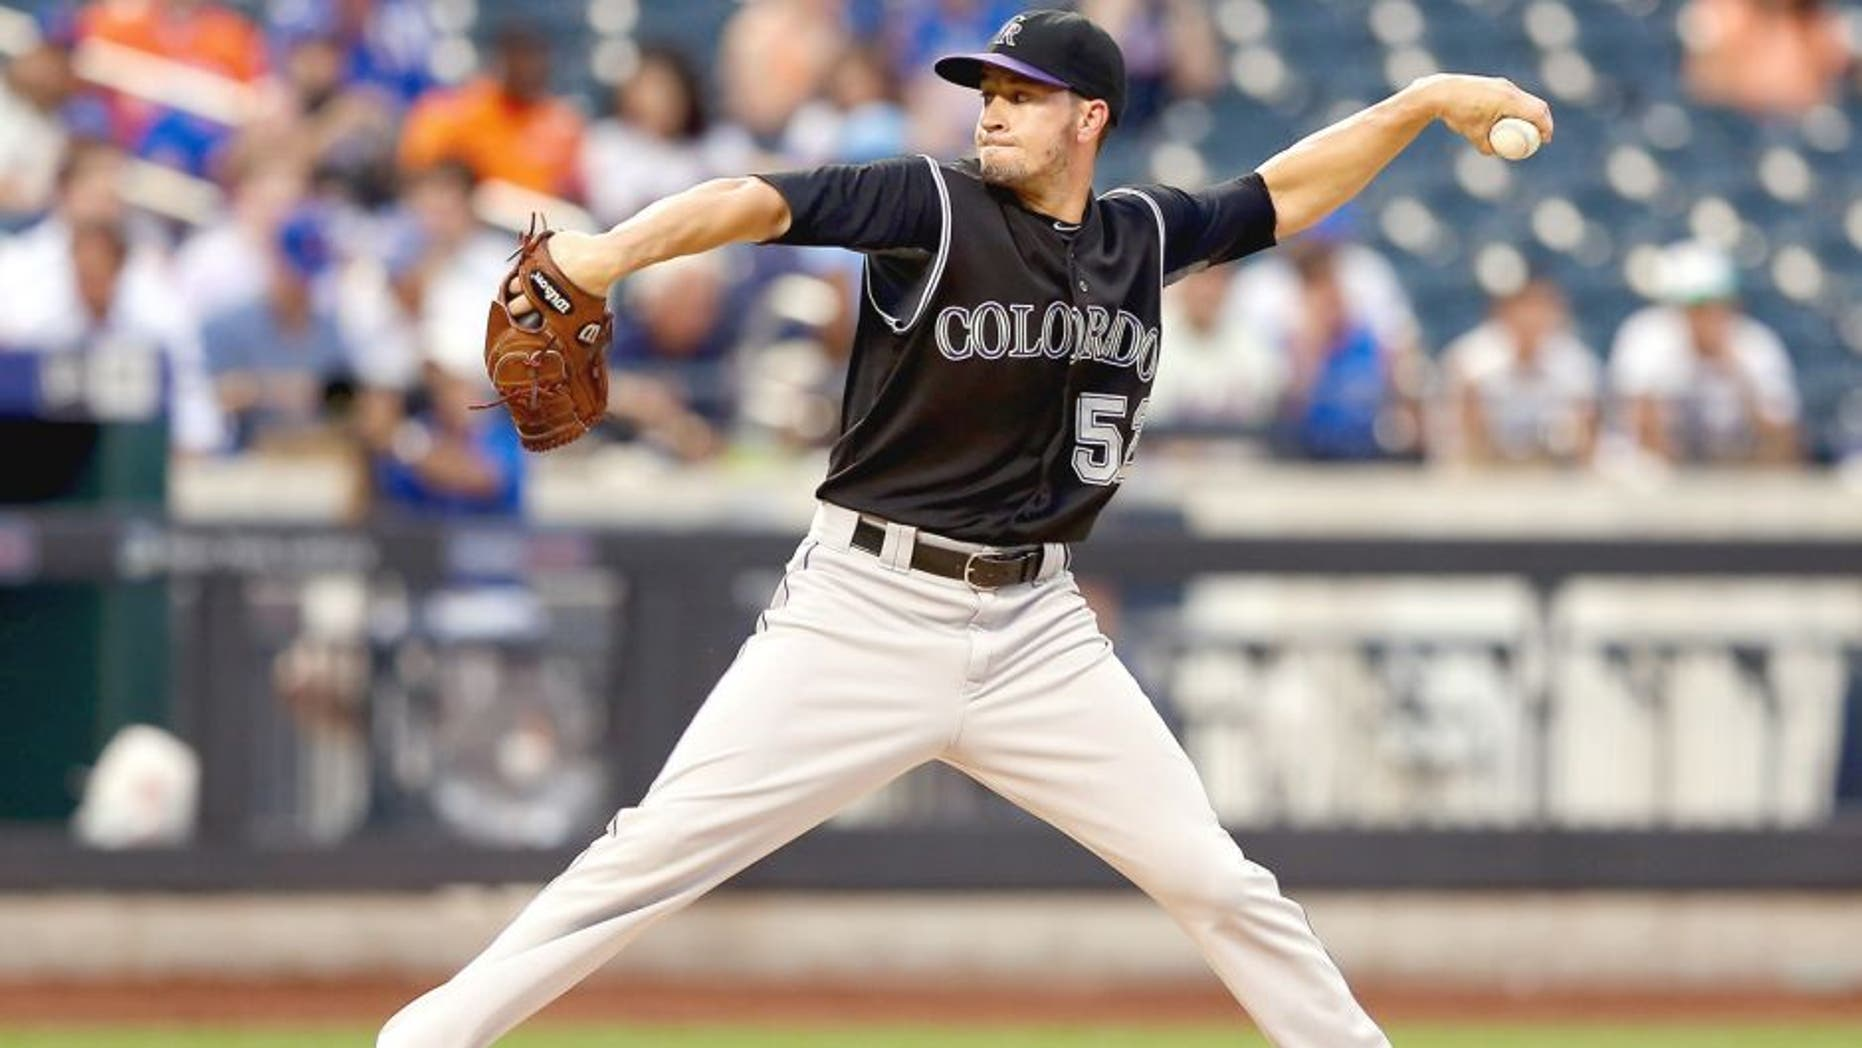 NEW YORK, NY - AUGUST 11: Chris Rusin #52 of the Colorado Rockies delivers a pitch in the first inning against the New York Mets on August 11, 2015 at Citi Field in the Flushing neighborhood of the Queens borough of New York City. (Photo by Elsa/Getty Images)